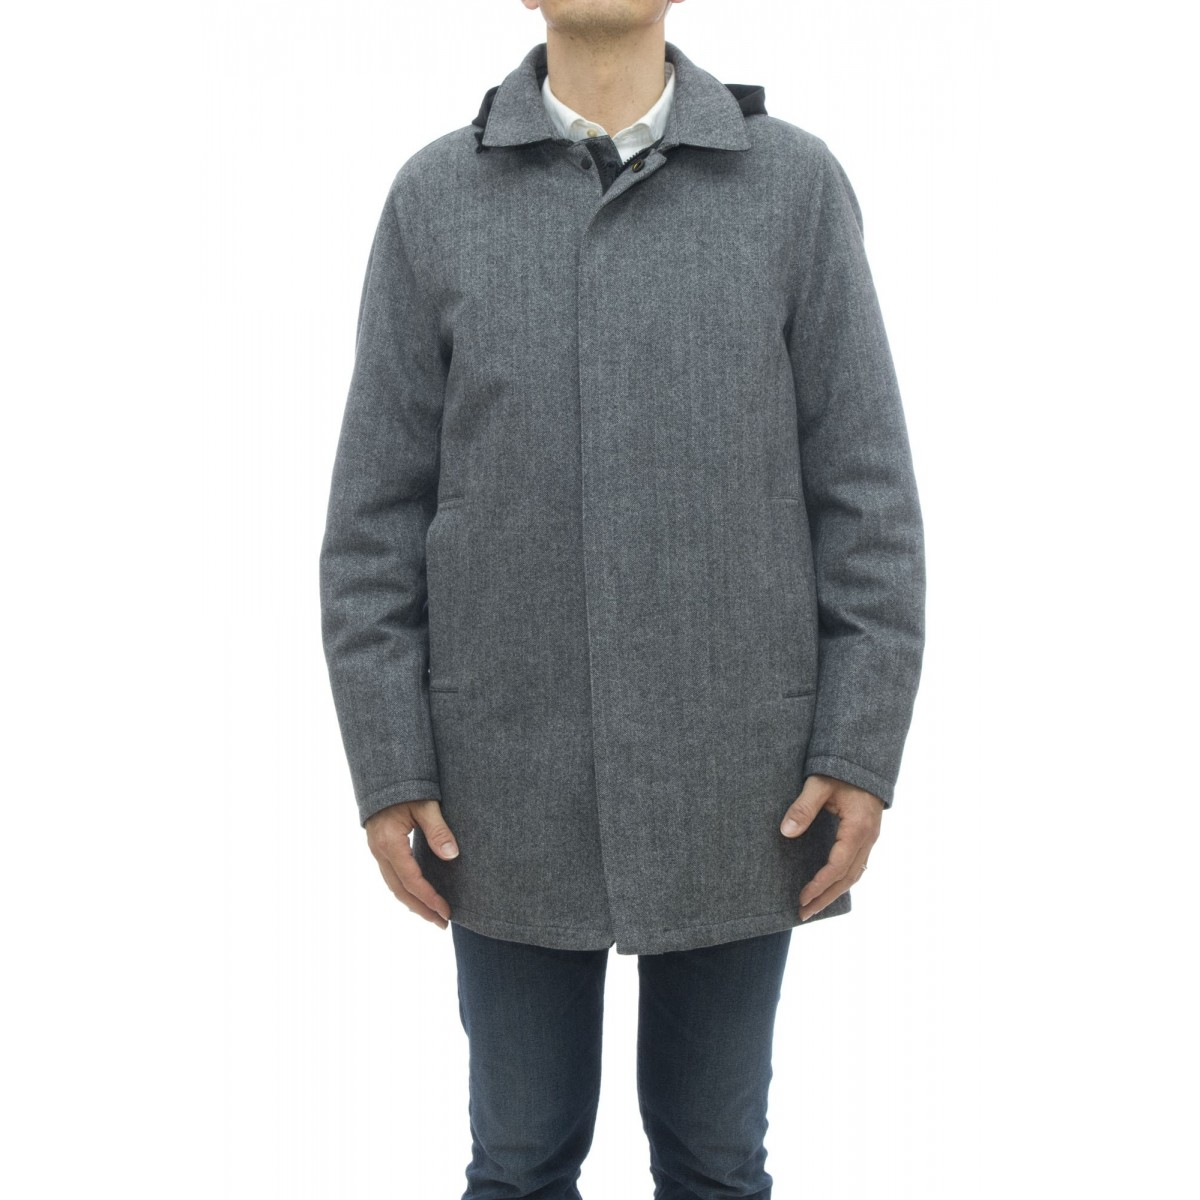 Piumino - Kyotot9316  trench lana zegna e 3m thinsulate